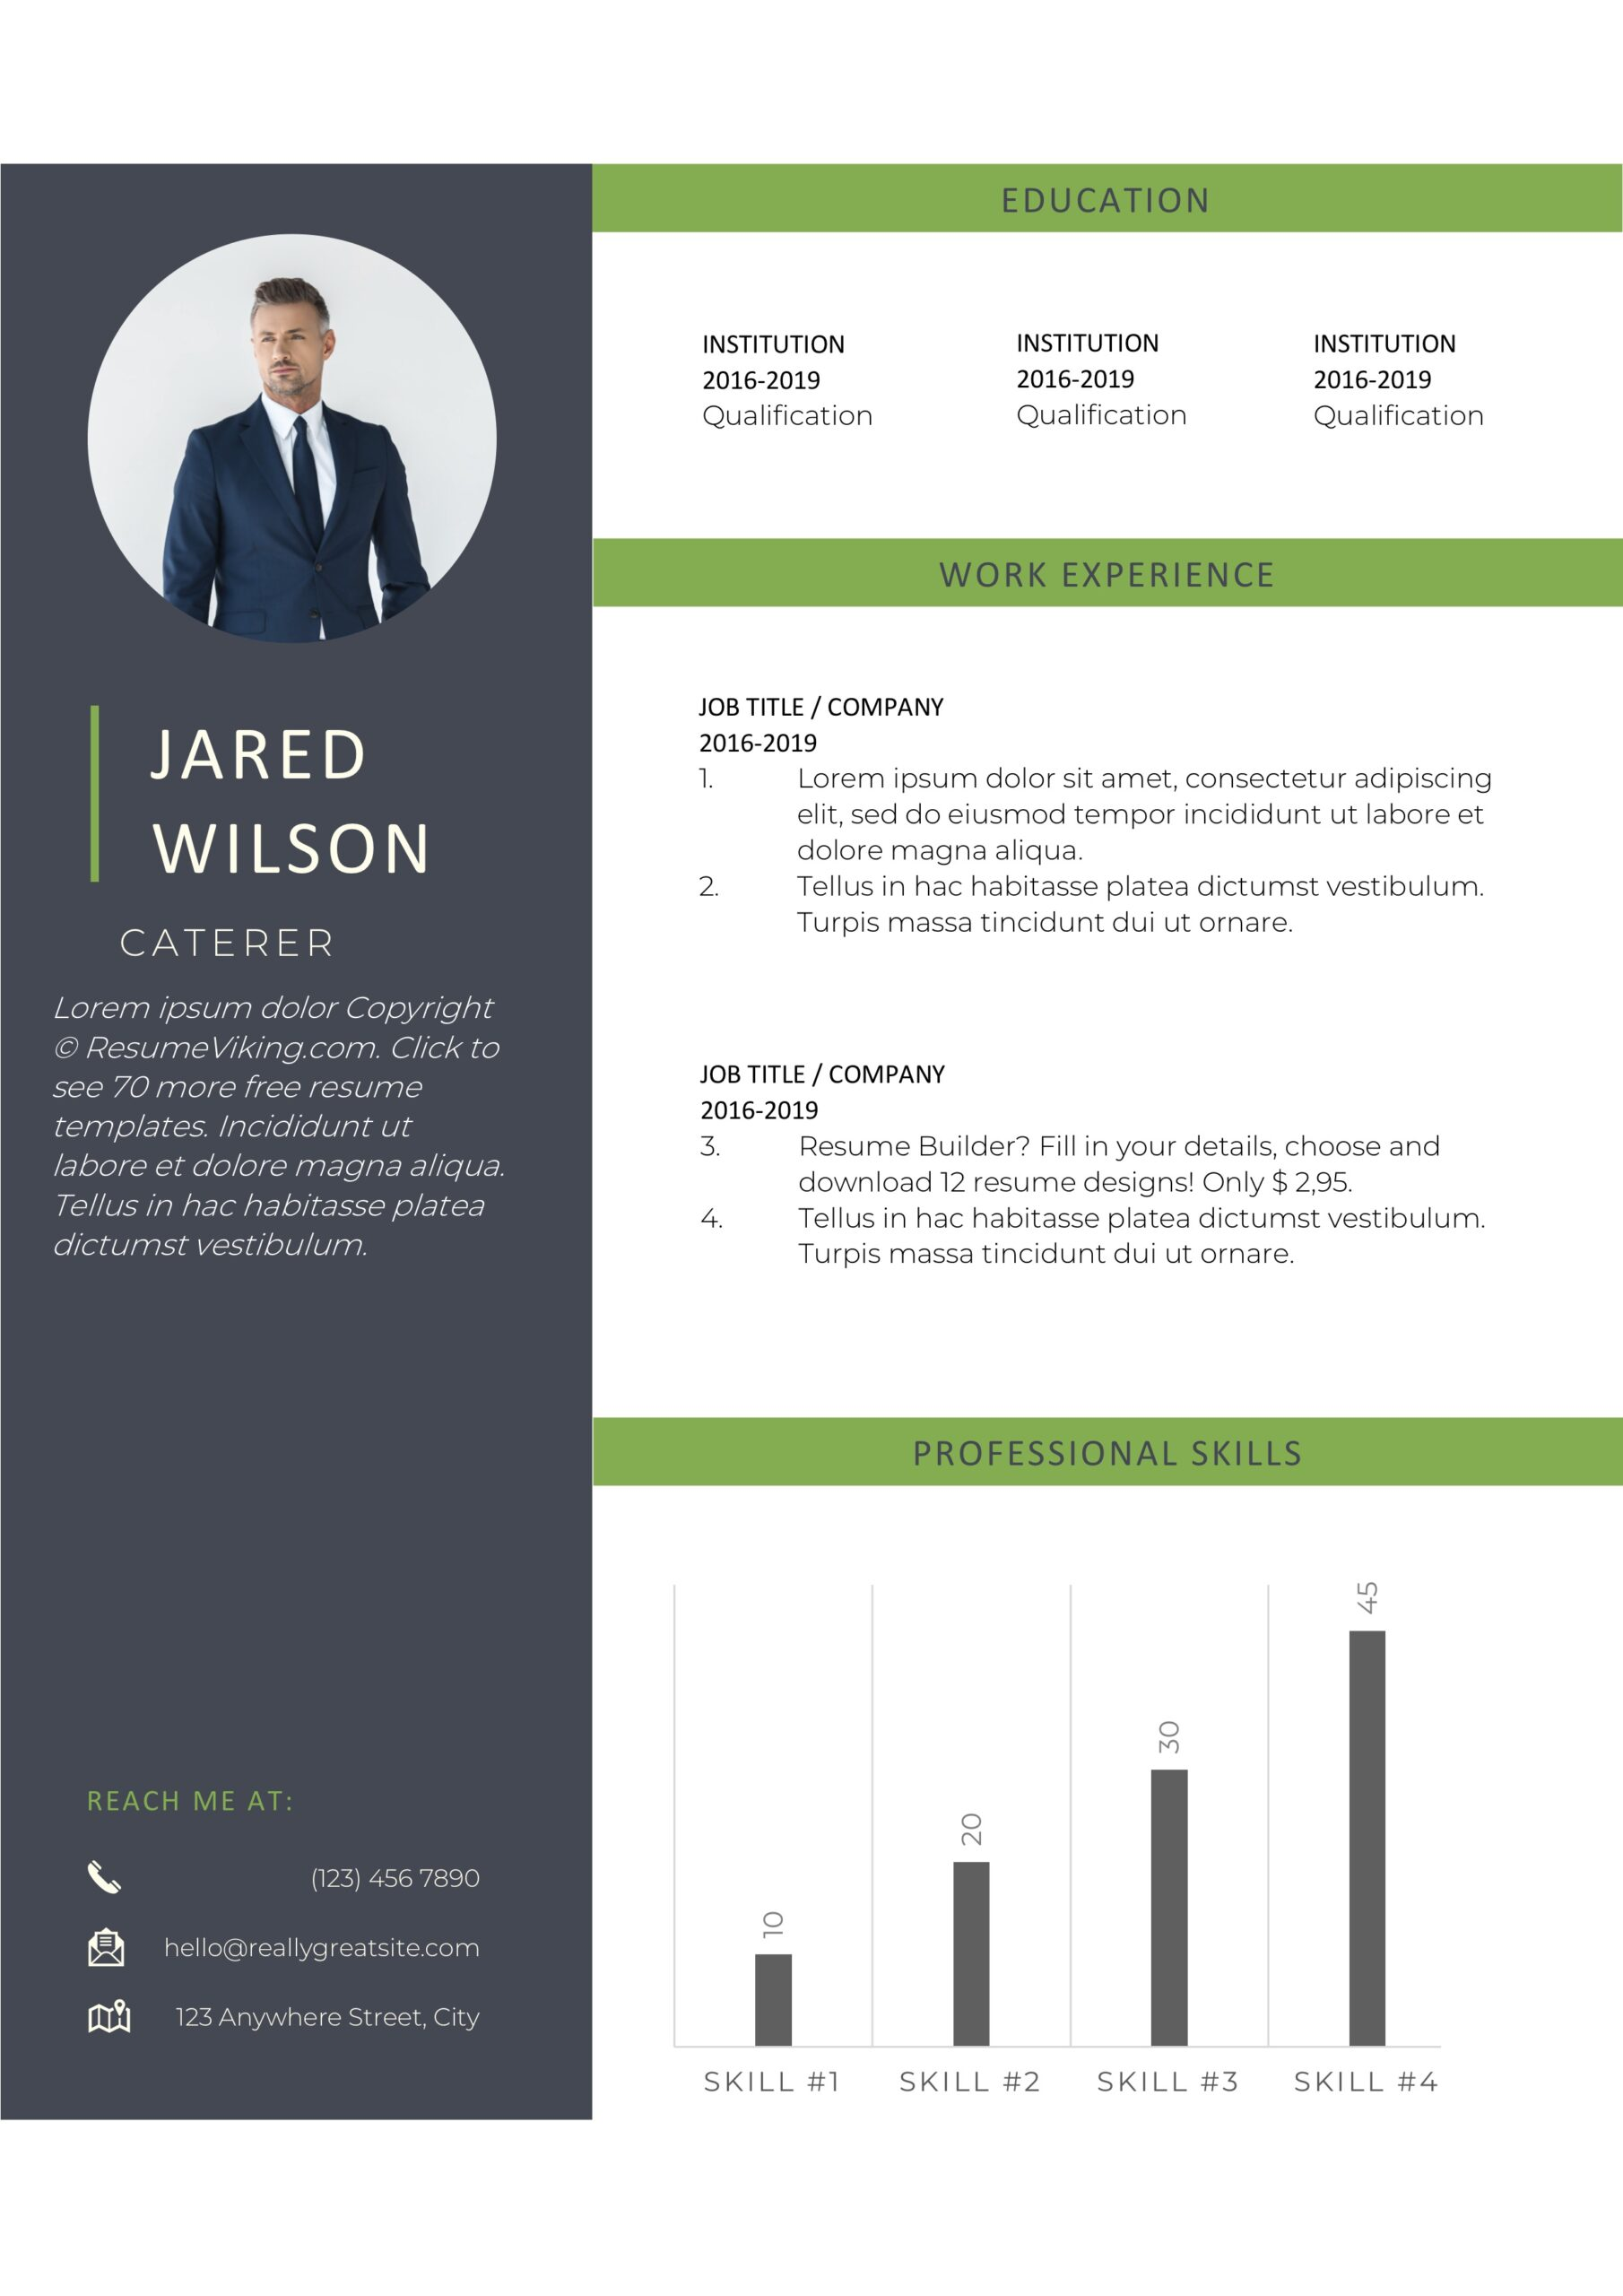 resume templates pdf word free downloads and guides creative builder grace resumeviking Resume Creative Resume Builder